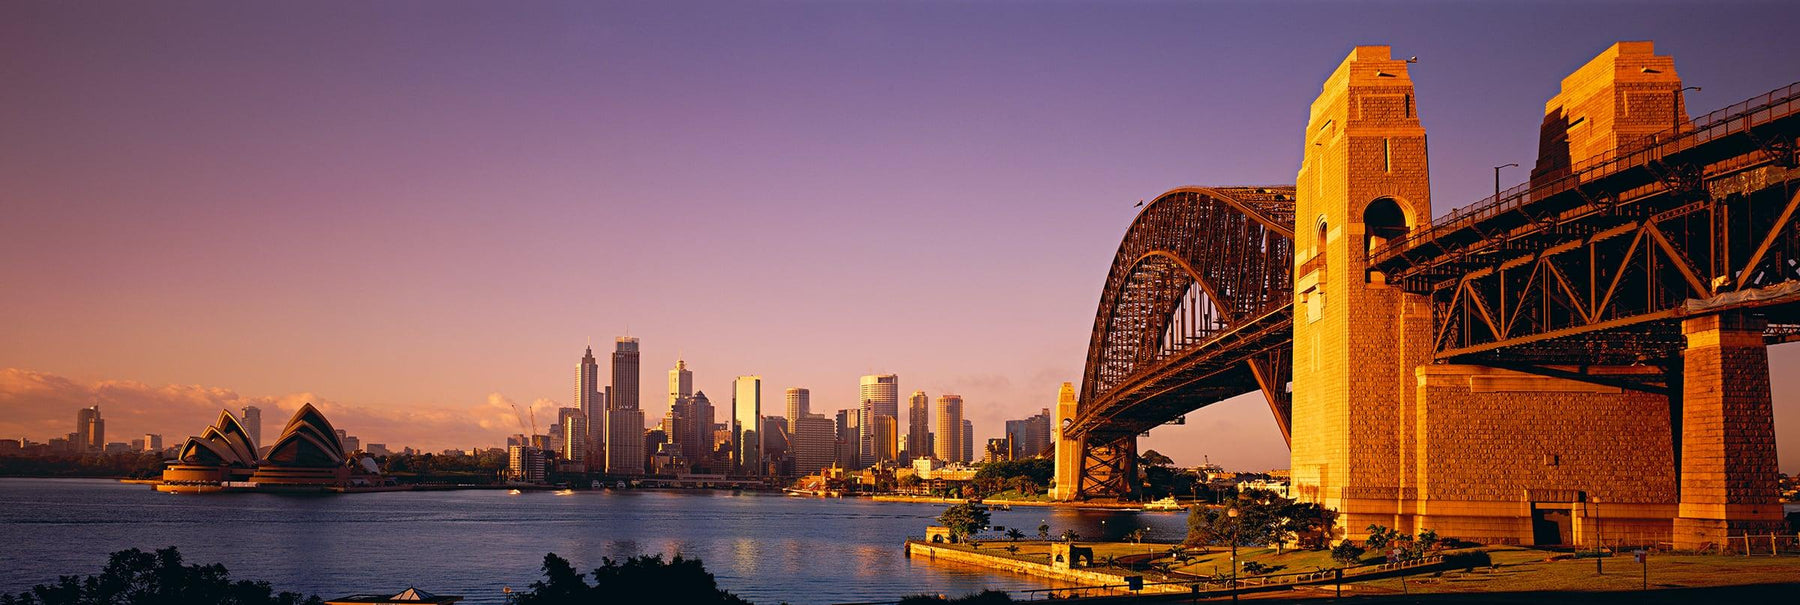 Sydney Harbour Bridge at sunrise with The Opera and city of Sydney Australia in the background